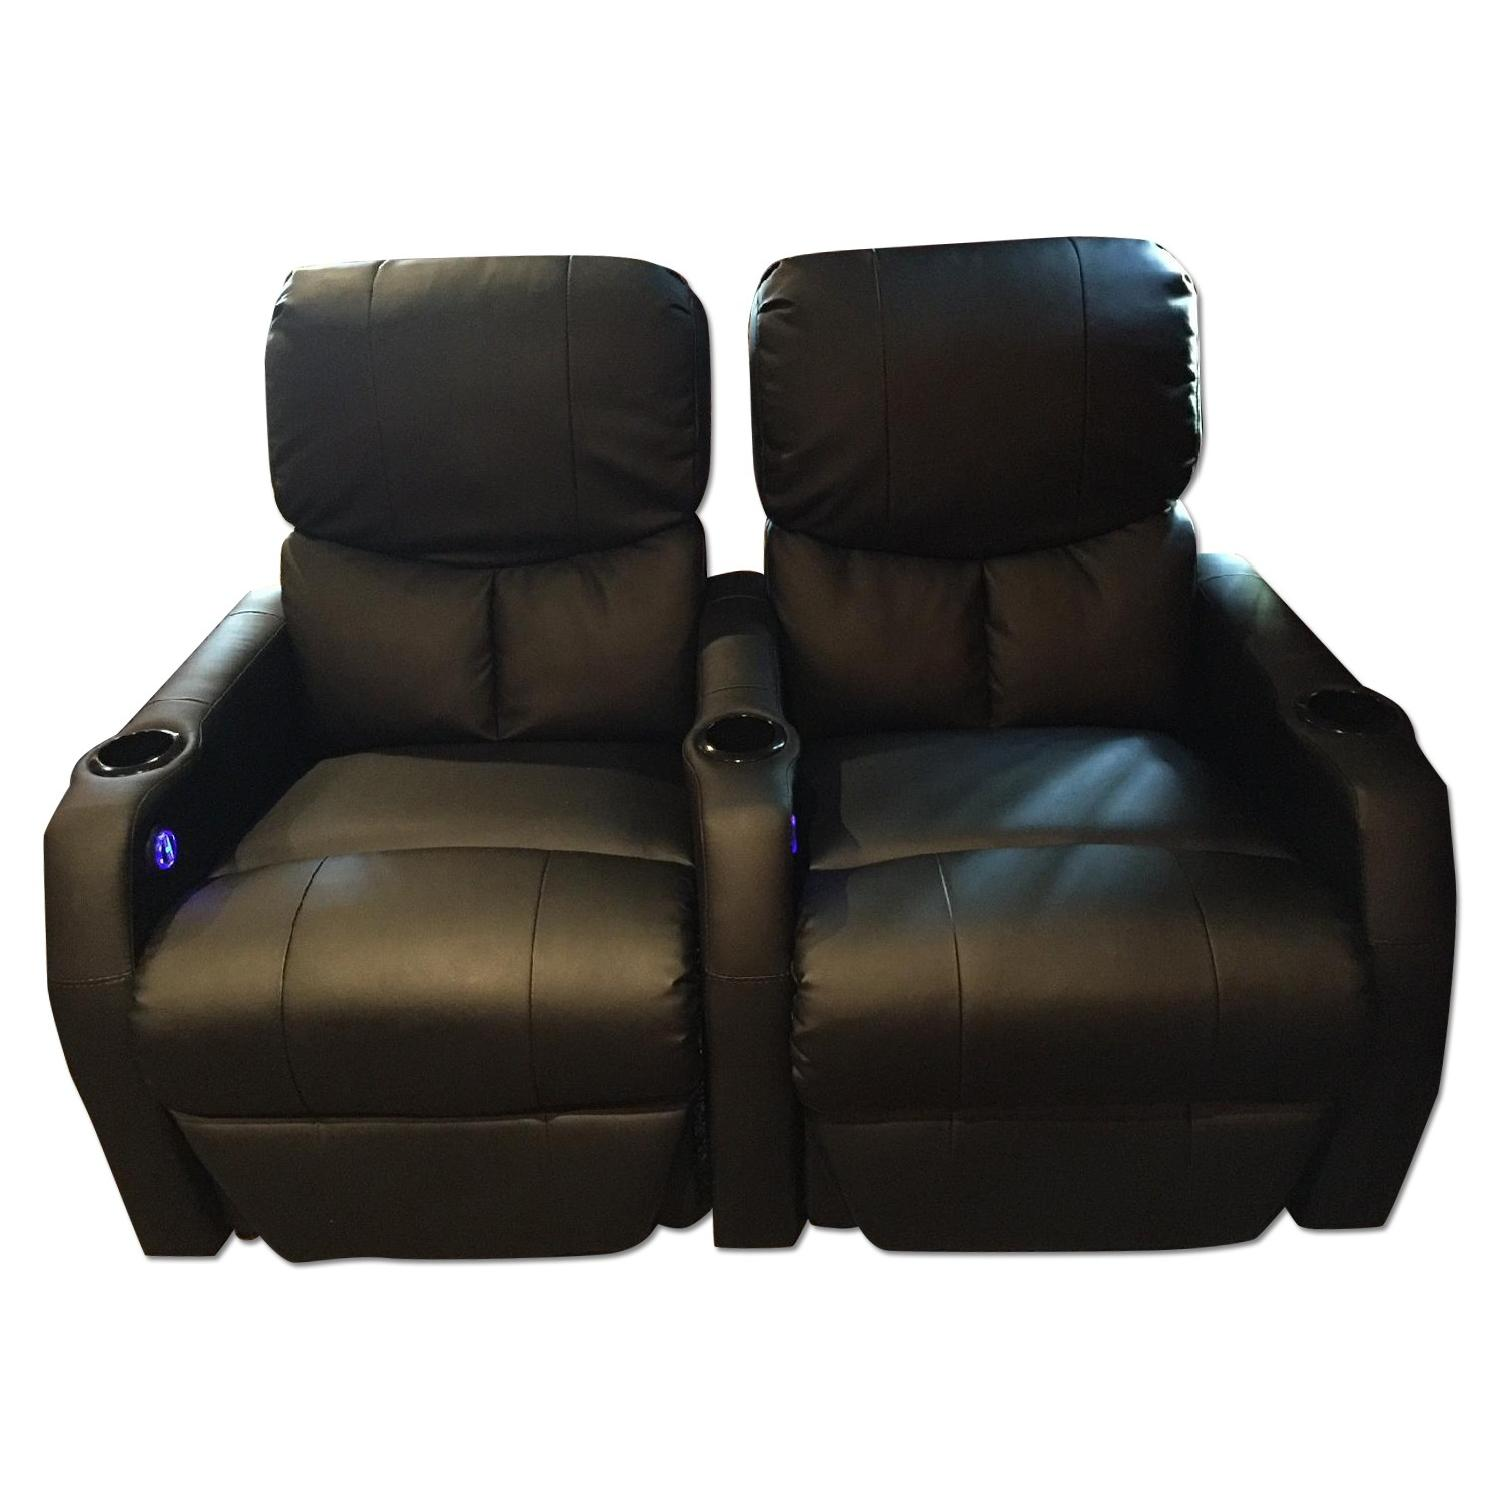 SeatCraft Home Theater Recliners - image-0